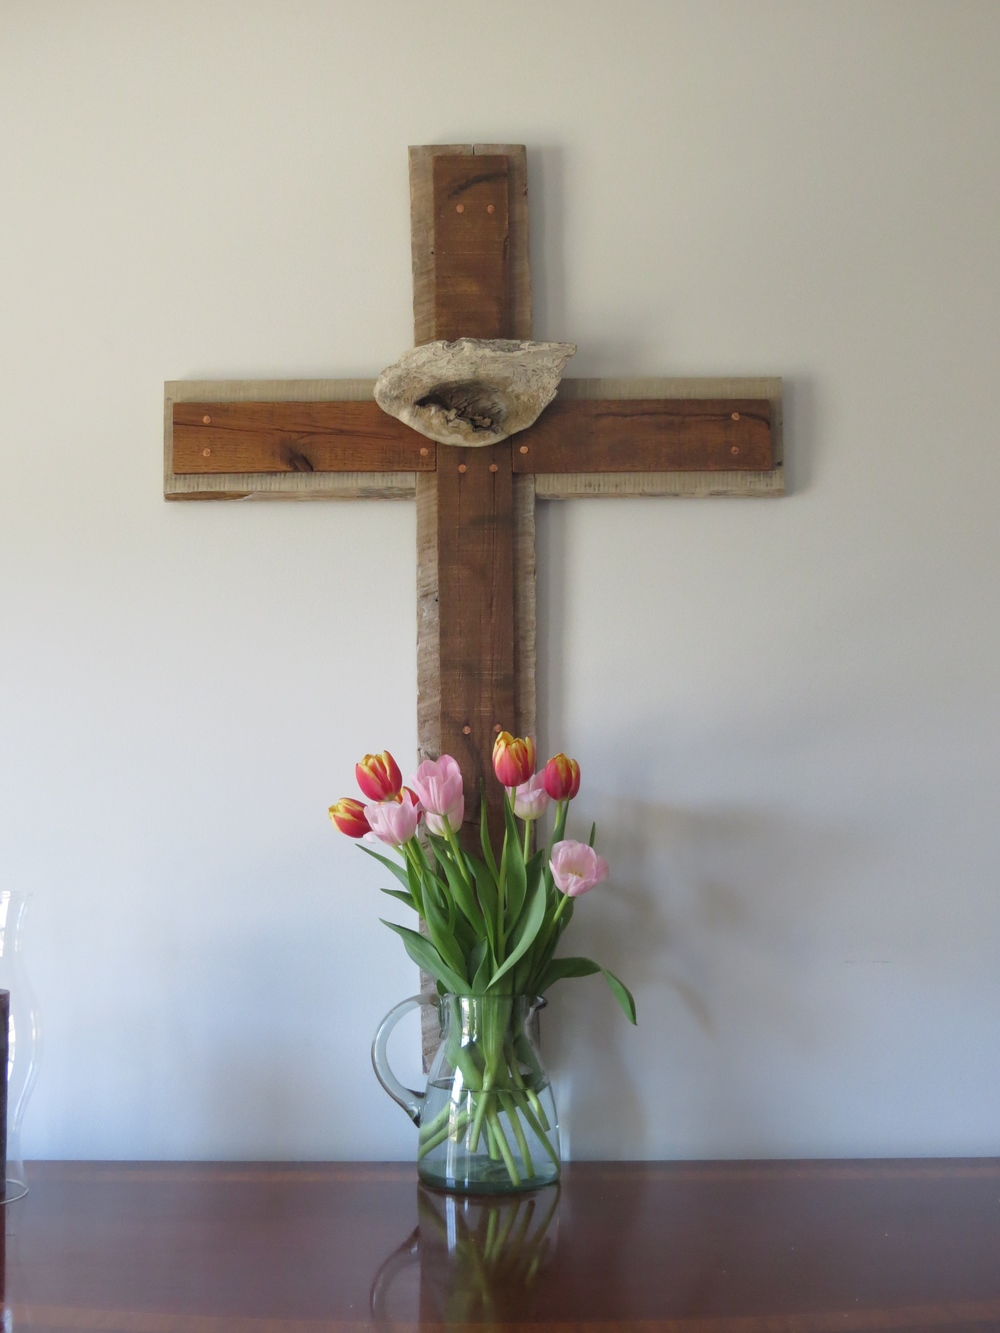 This cross proudly rests on the wall in our dining room. It's the one my husband built for me to be on the altar overlooking the water on our wedding day. I like to show off God's handiwork in his hands. And those are the tulips I've been bragging about...